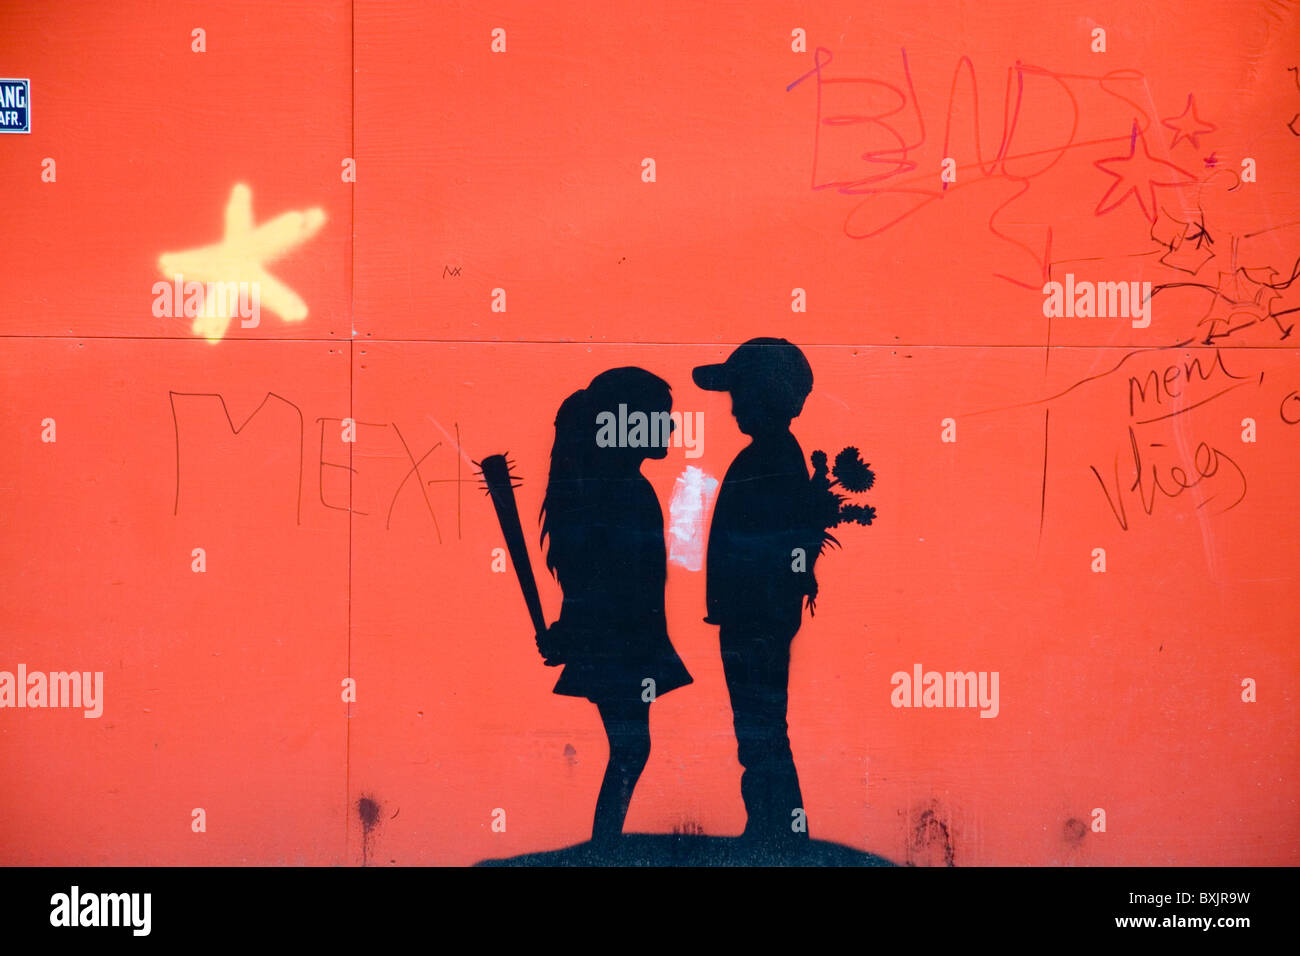 'Love and Hate' graffito mural on a builders hoarding, Amsterdam, Netherlands. - Stock Image